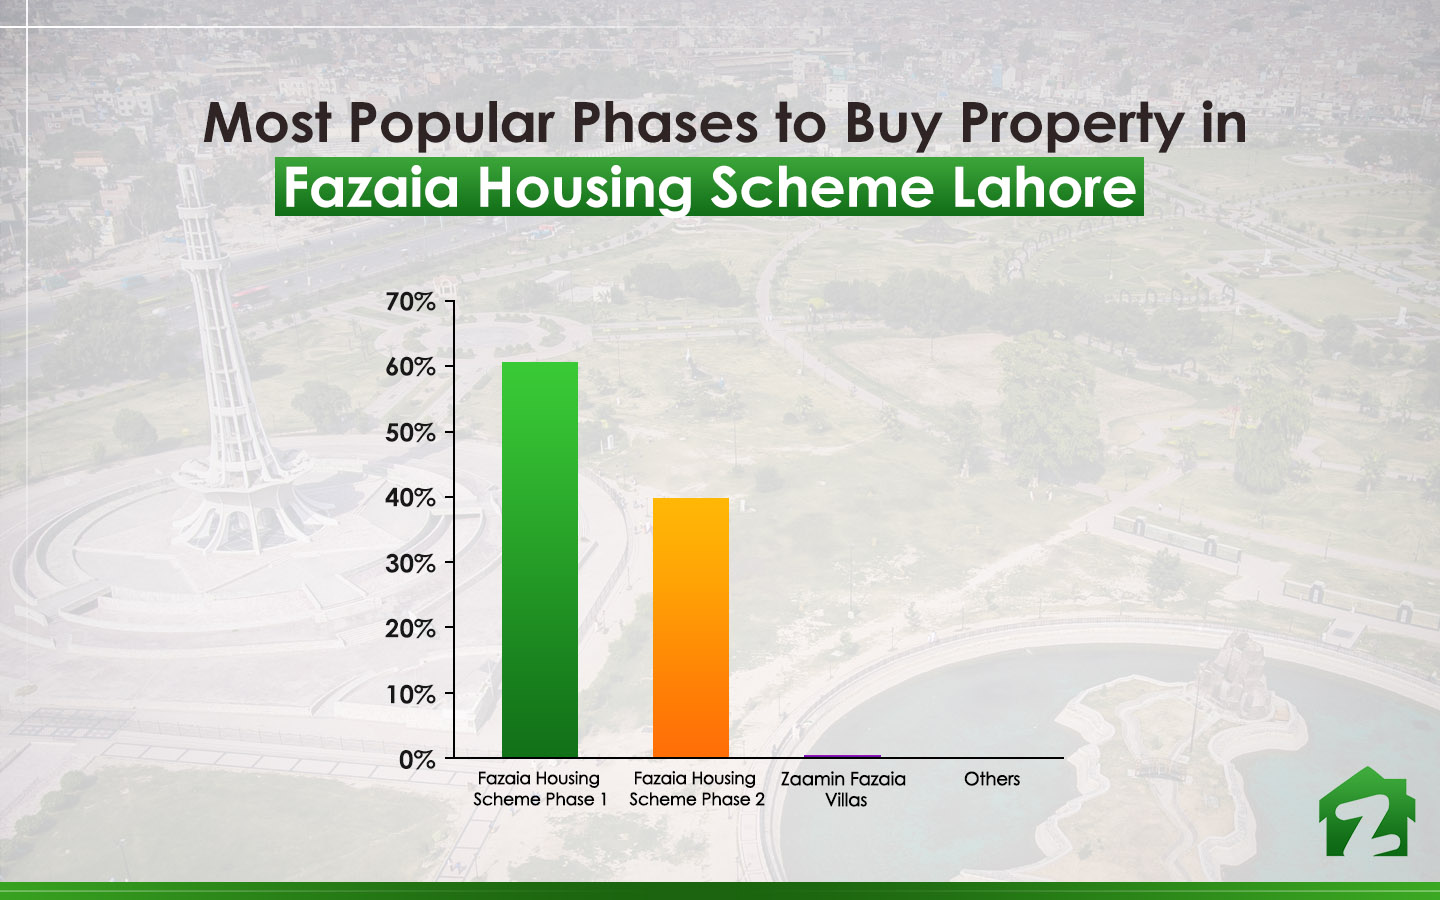 Fazaia Housing Scheme Phase 1 is the popular choice for buying property